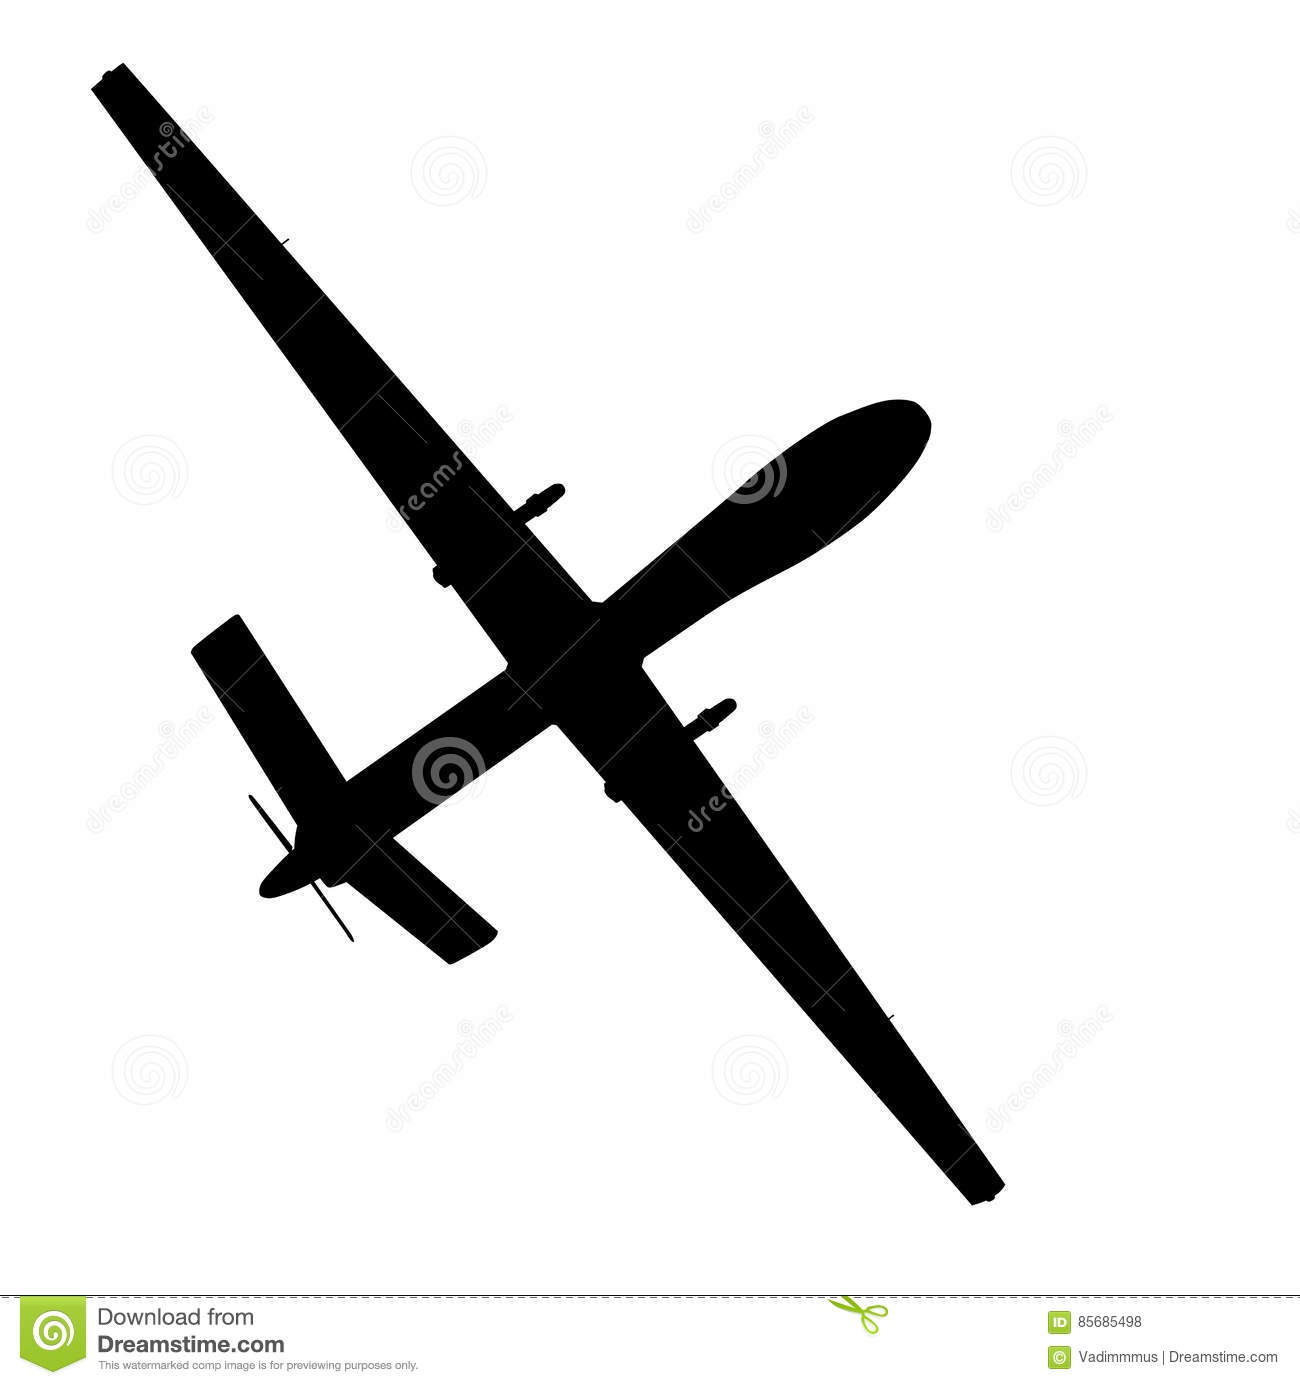 predator reaper drone with Stock Illustration Weapon Drone Vectors Flying Vector Silhouette Eps Image85685498 on Watch moreover New Jet Powered Uav Future Asymmetrical Warfare besides Newsga Asi Due Regard Radar Predator B Uav likewise Mq 9 additionally 9691415 Nitroplanes Mq 9 Reaper Print.